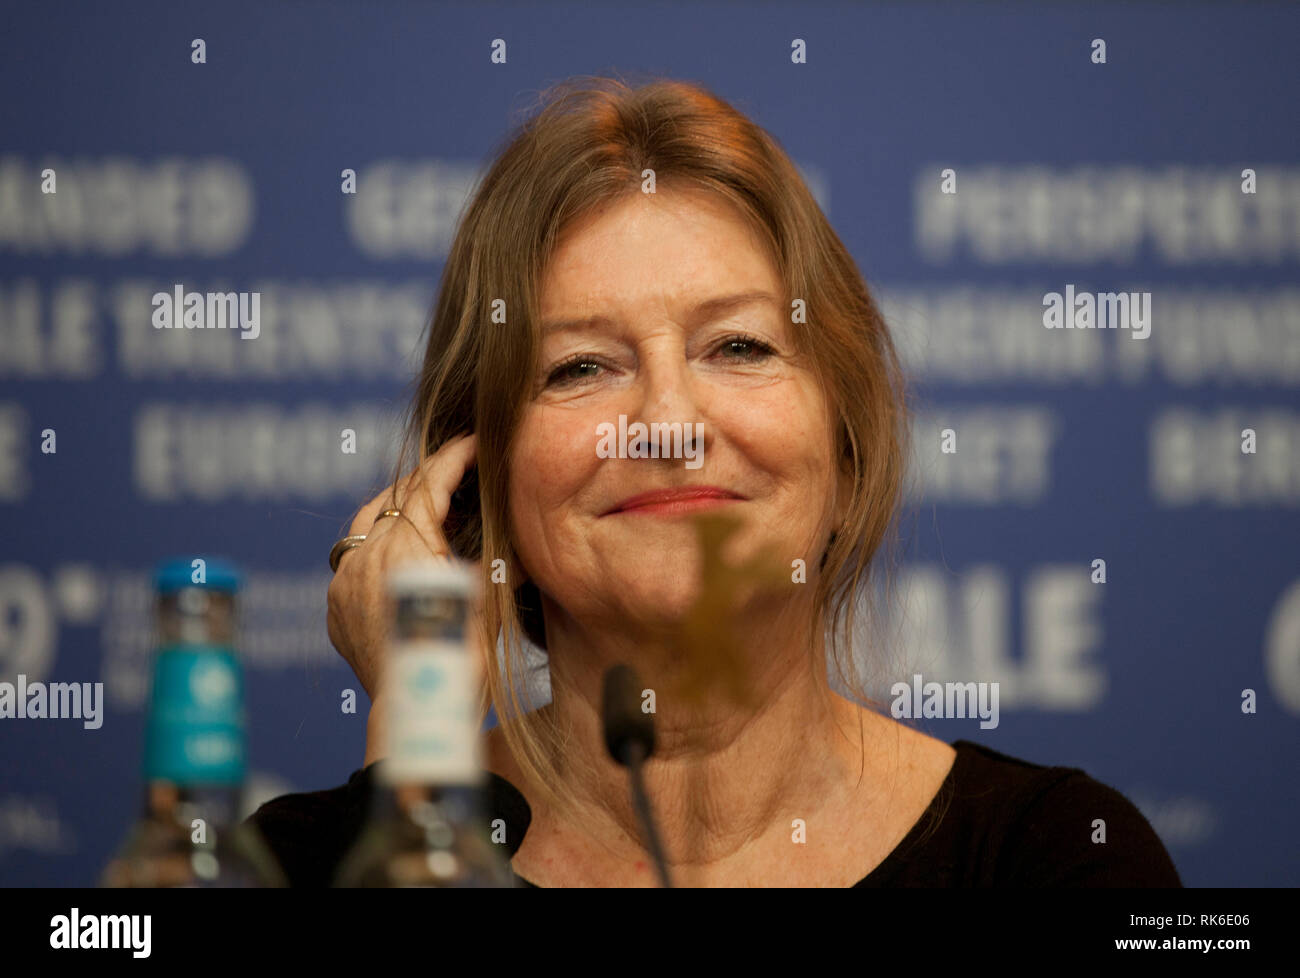 Berlin, Germany. 9th Feb 2019. Producer Turid Øversveen at the press conference for the film Out Stealing Horses (Ut Og Stjæle Hester) at the 69th Berlinale International Film Festival, on Saturday 9th February 2019, Hotel Grand Hyatt, Berlin, Germany. Credit: Doreen Kennedy/Alamy Live News - Stock Image